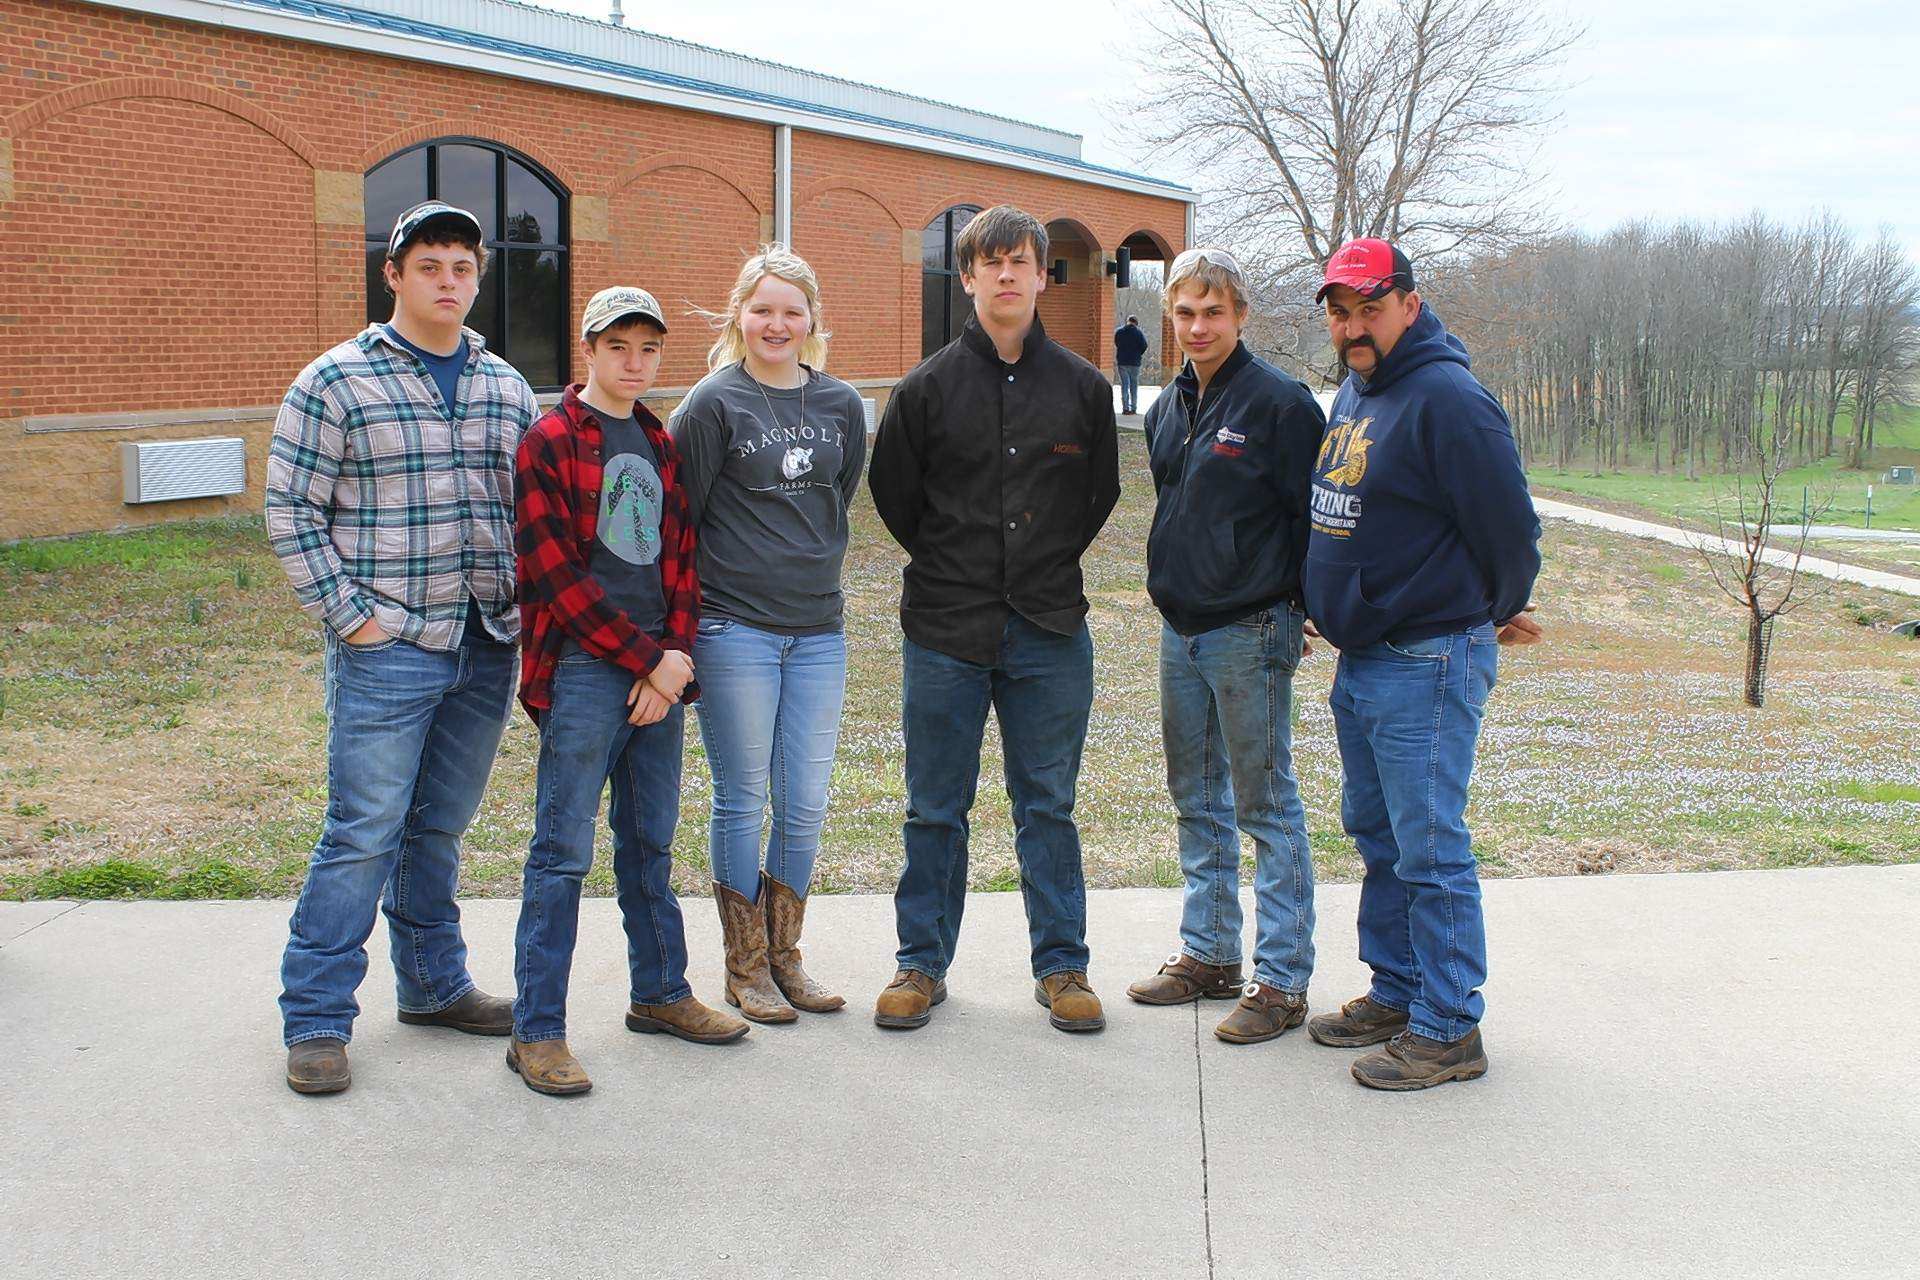 Pope County High School's FFA Chapter participated at the 2018 FFA Section 25 Ag Mechanics Competition at Southeastern Illinois College. Pictured are (not in order): John Bremer, Kyle Kunath, Garin Lehman, Ethan Murphy and Jordyn Swinford.